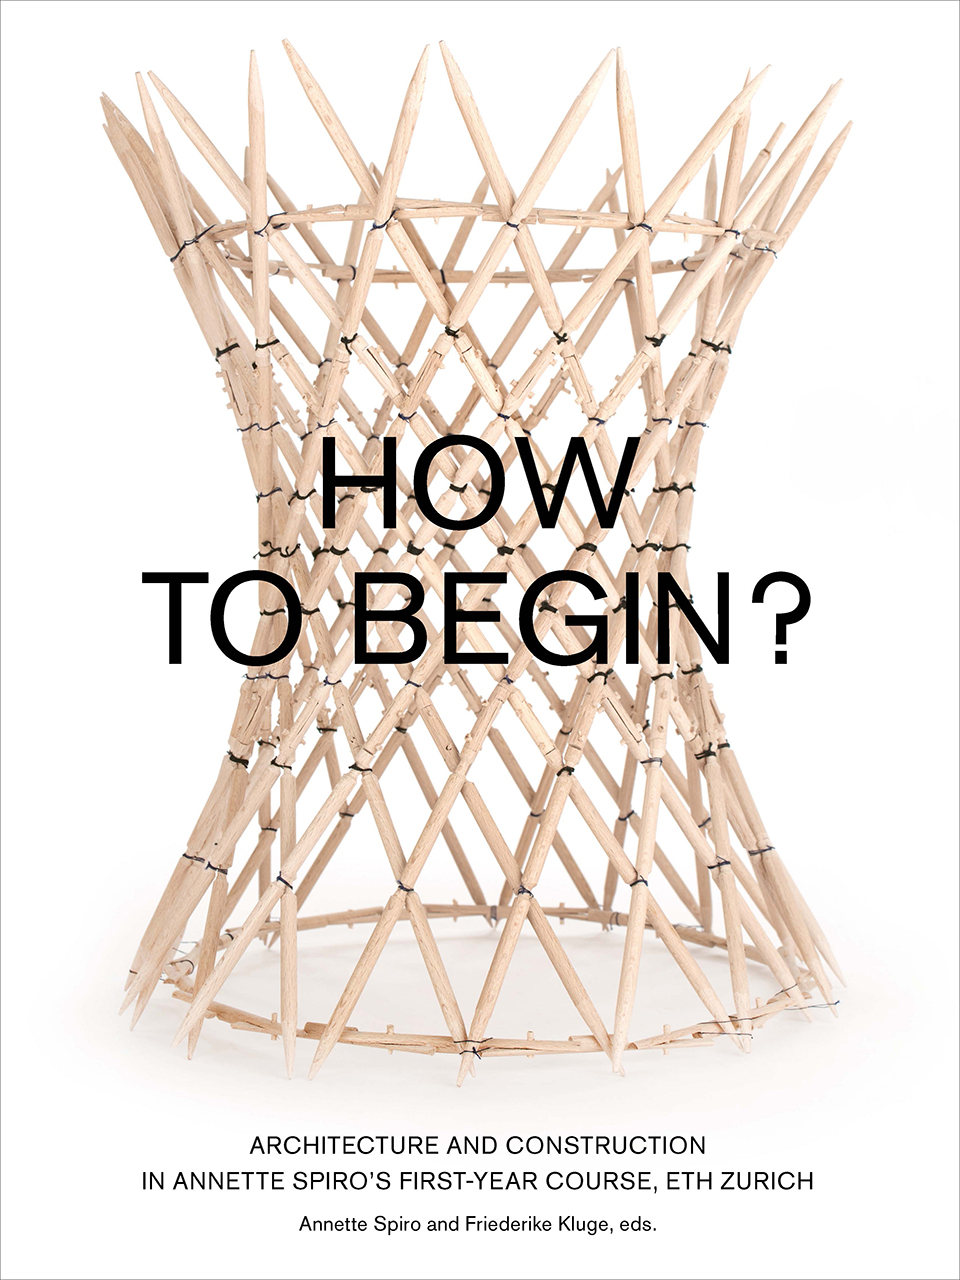 How to Begin?: Architecture and Construction in Annette Spiro's First-Year Course, ETH Zurich